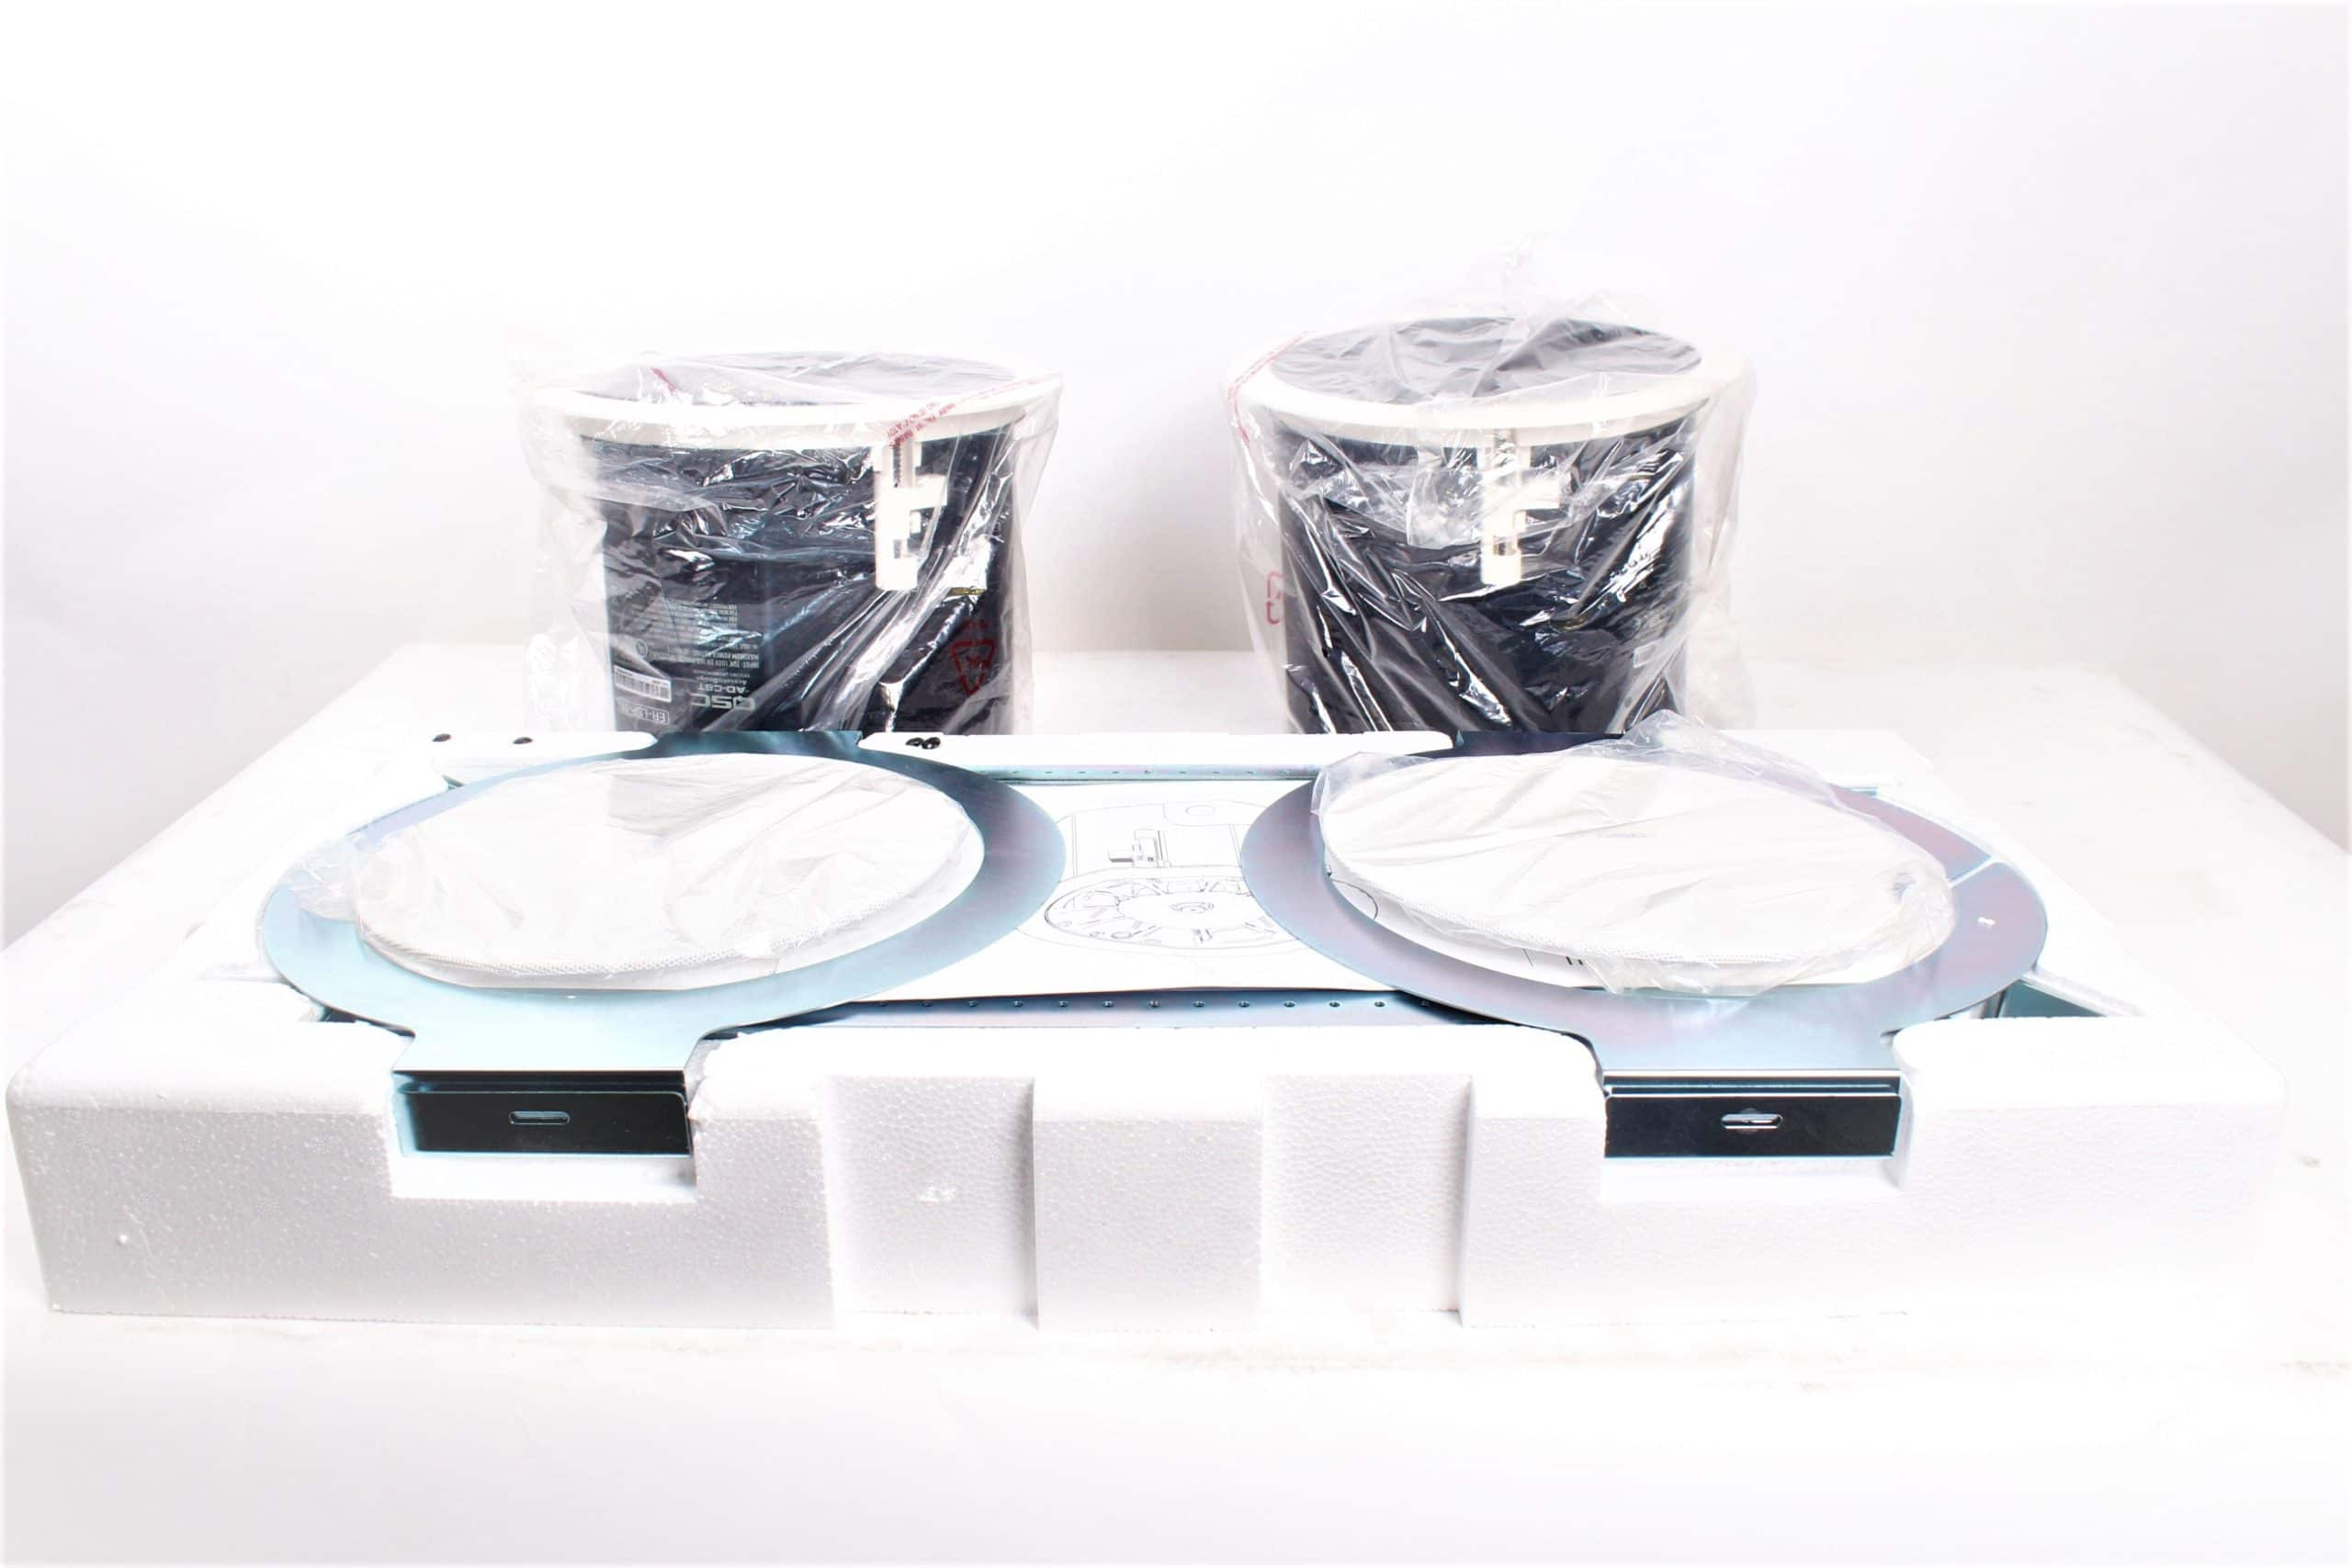 qsc-ad-c6t-65-two-way-ceiling-speaker-pair-w-mounting-hardware-in-original-box main